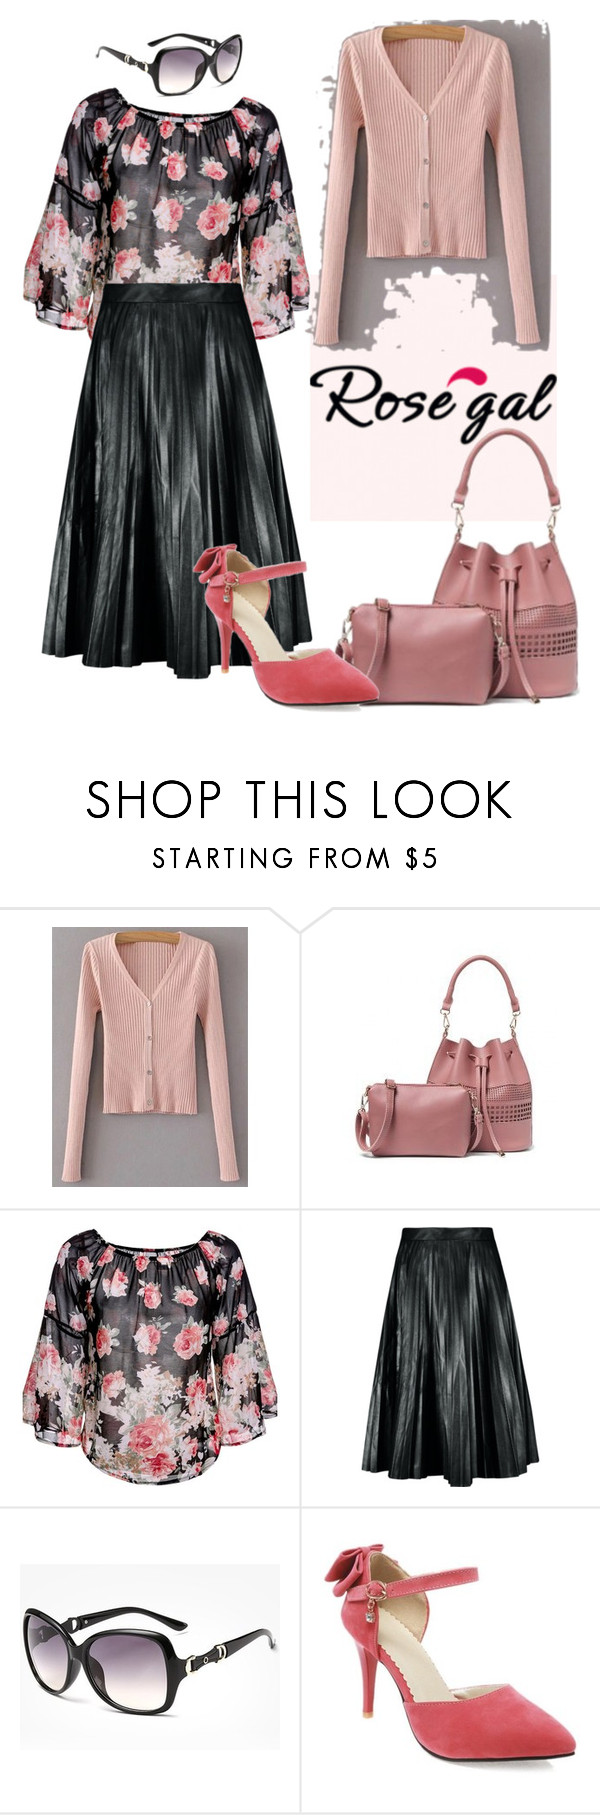 """""""Rosegal"""" by confusioninme ❤ liked on Polyvore"""